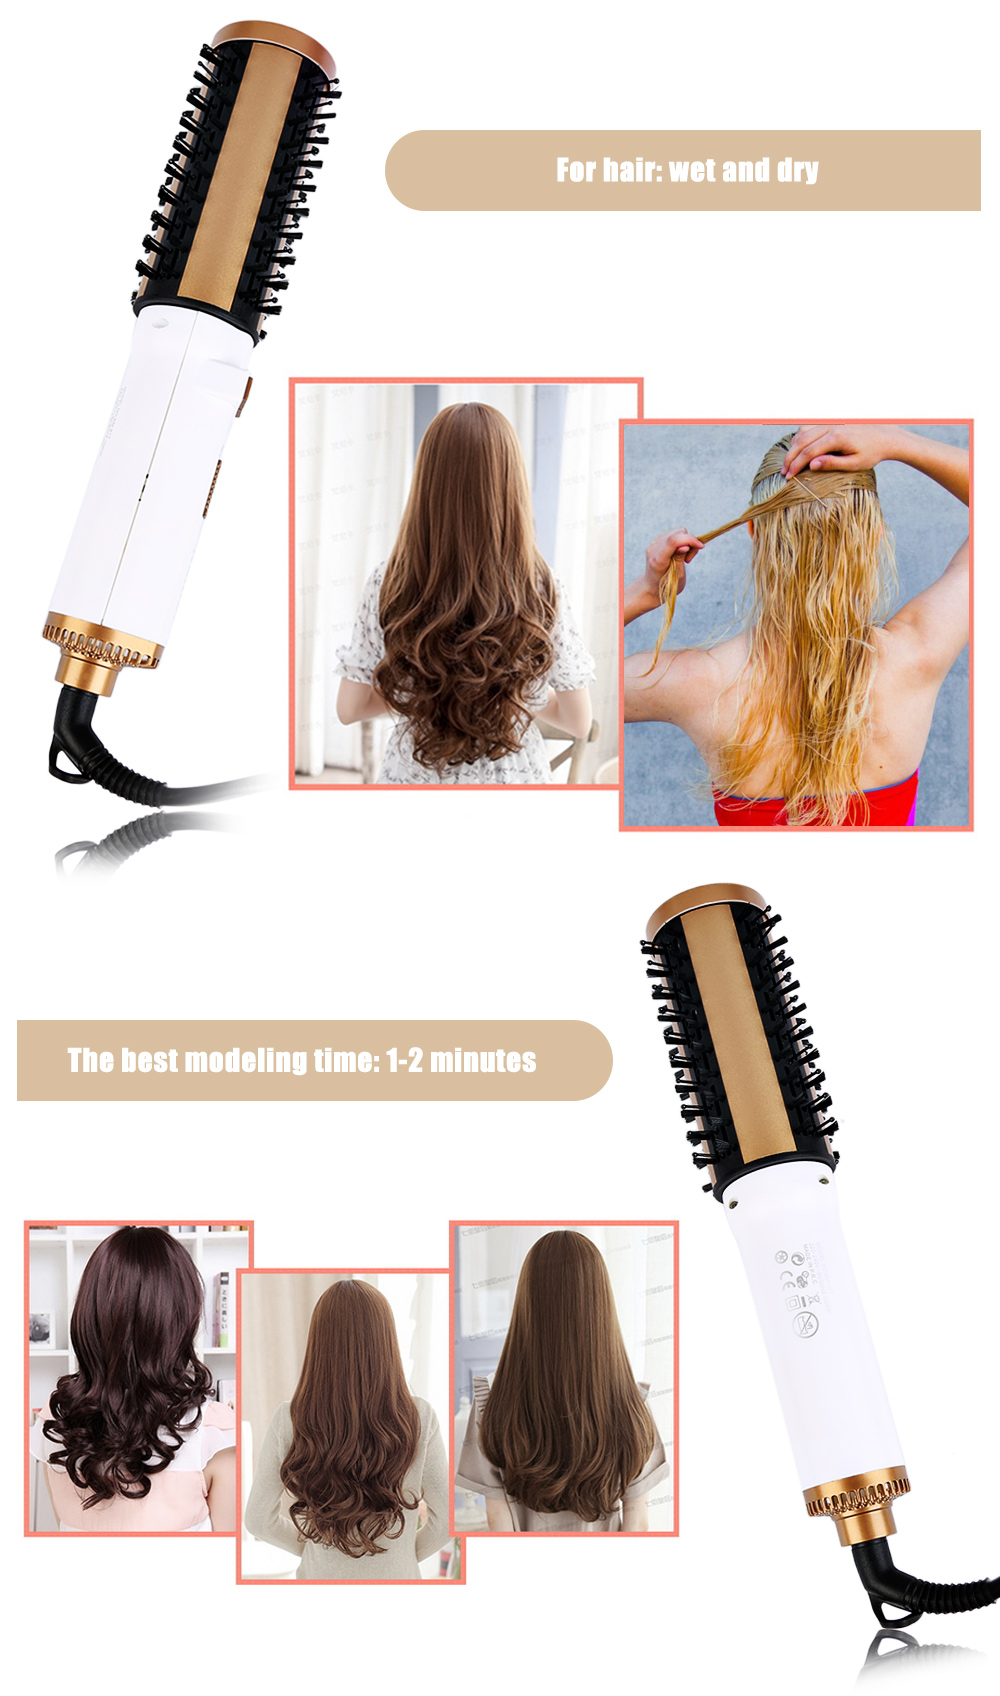 Kemei KM - 817 Hair Styling Tool Negative Ion Hair Care Volume Dryer Curler Comb